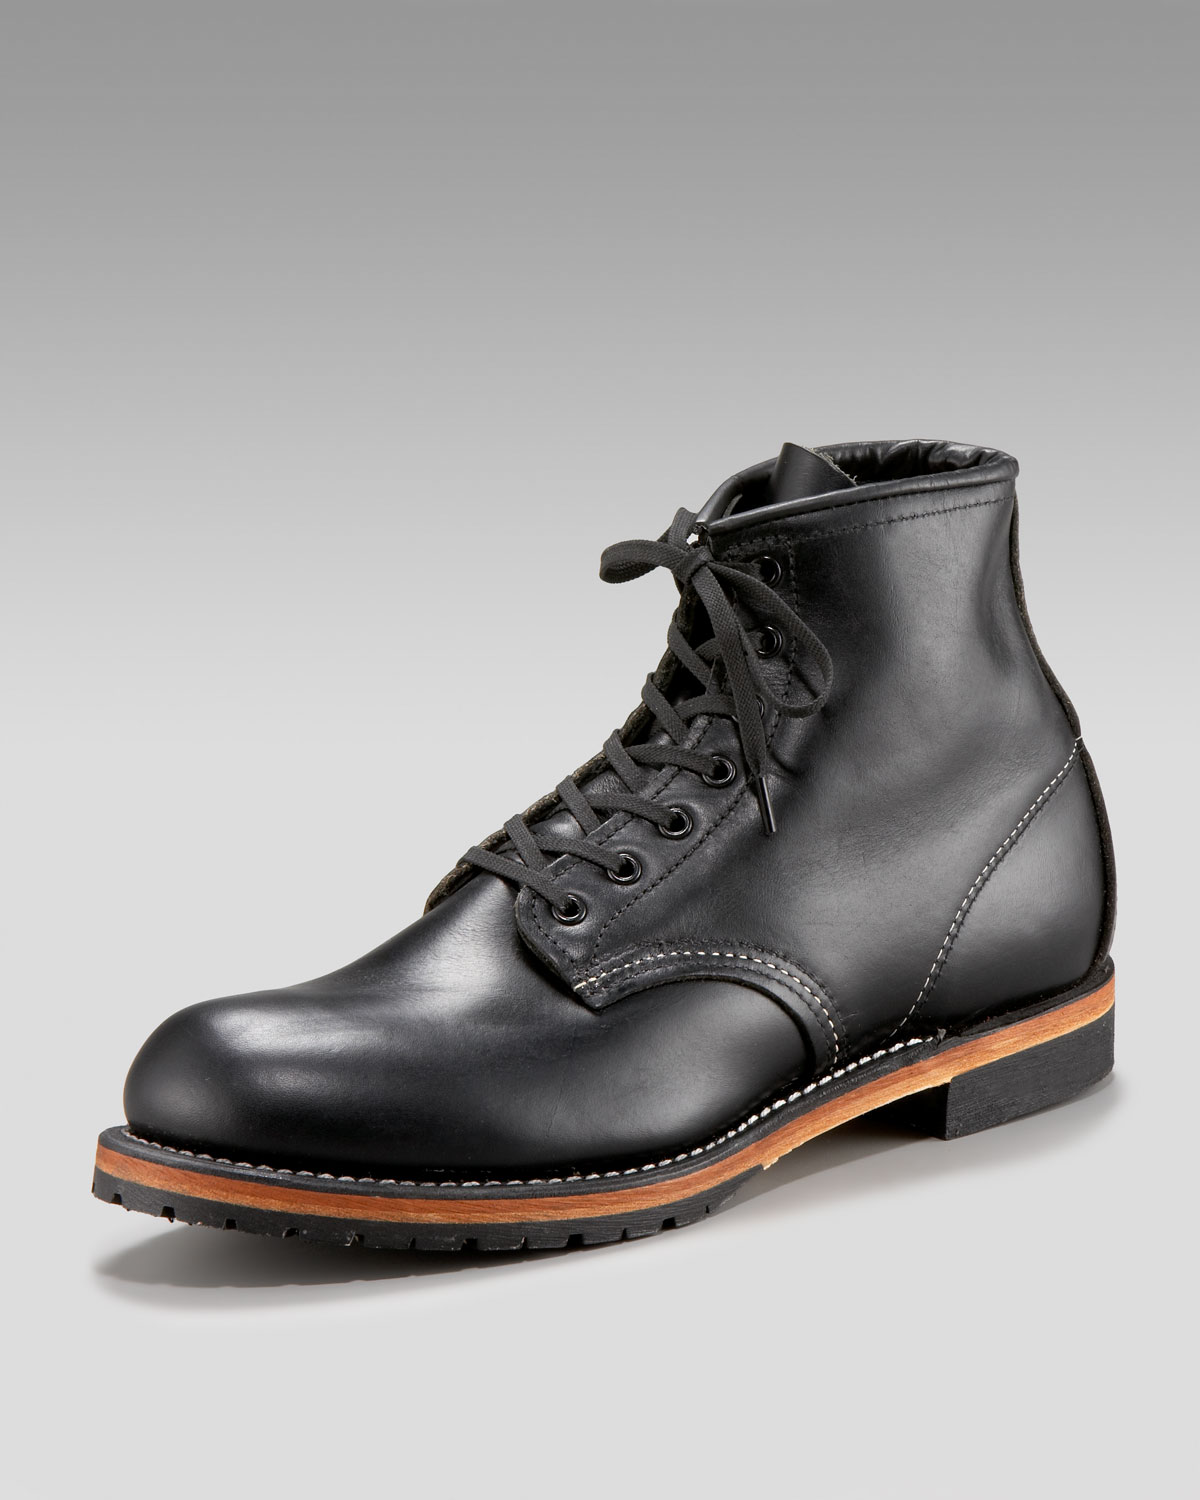 Black Red Wing Boots BDIOLP4M